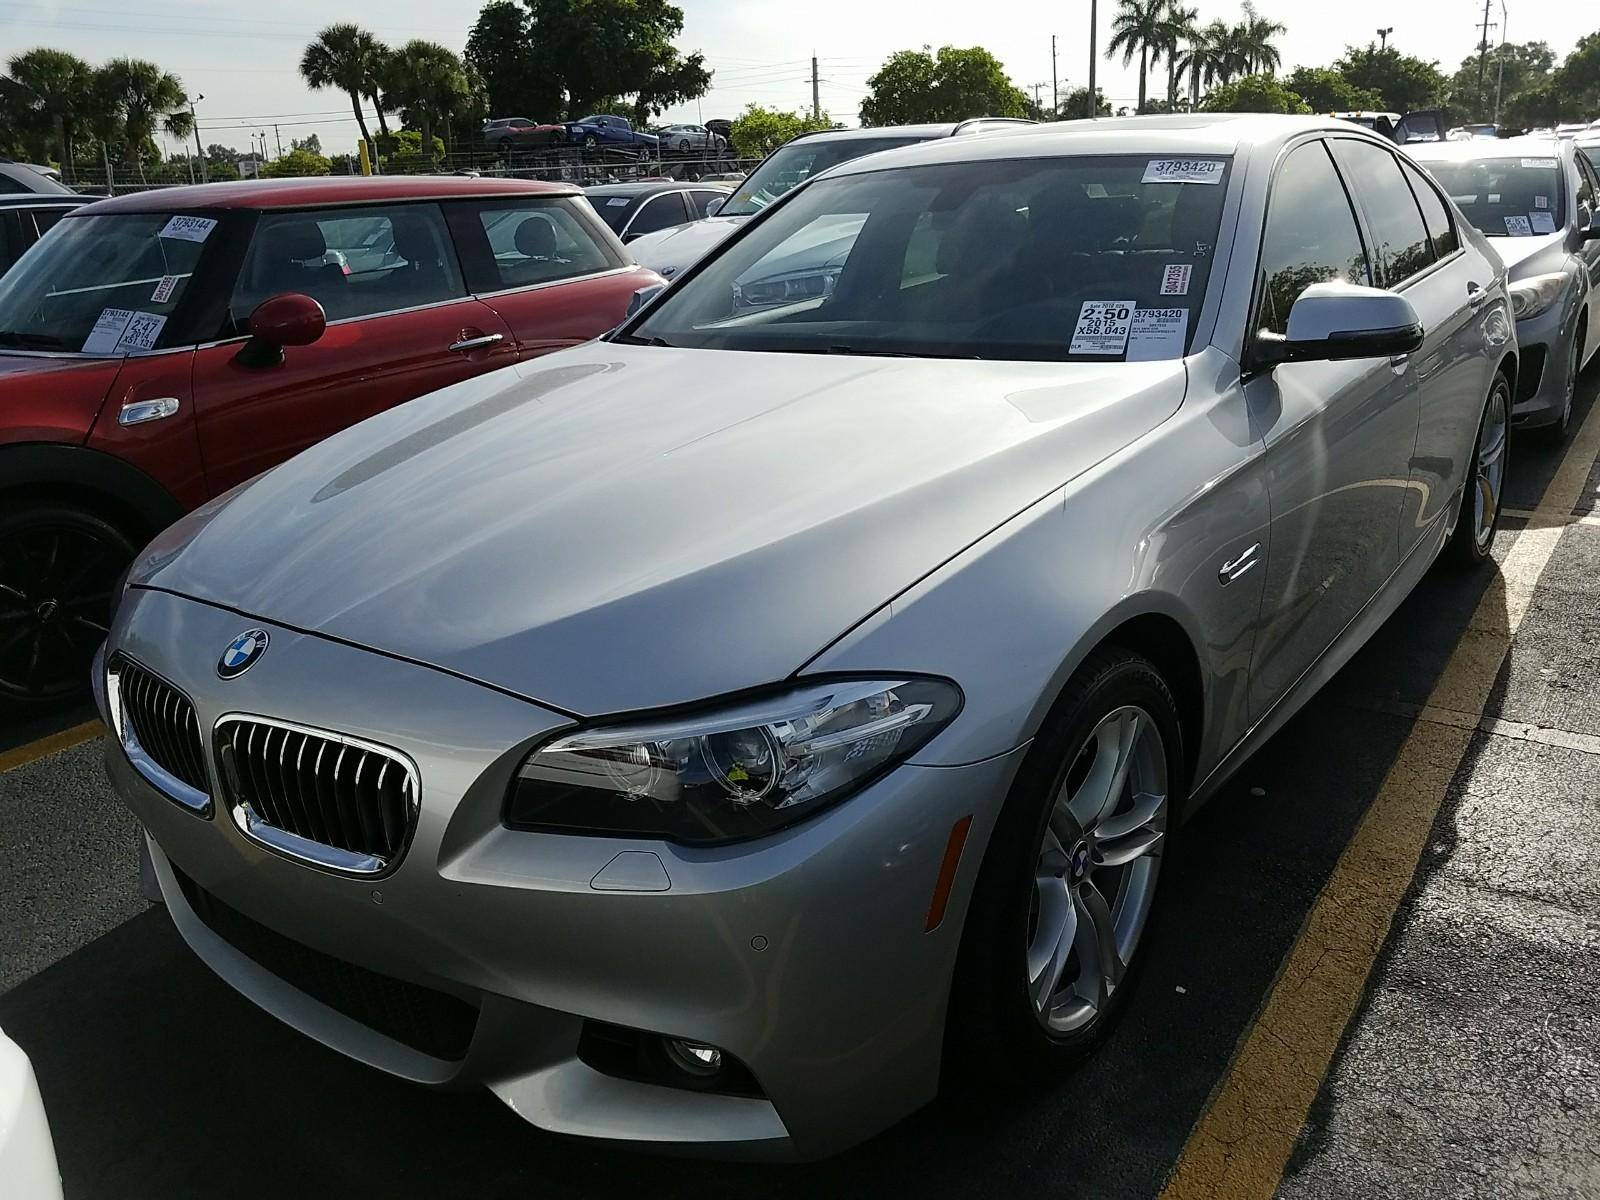 Used 2015 Bmw 5 Series 528i Msport Sedan For Sale In Miami Fl 81 Subaru Gl Fuel Filter Location 96424 Florida Fine Cars